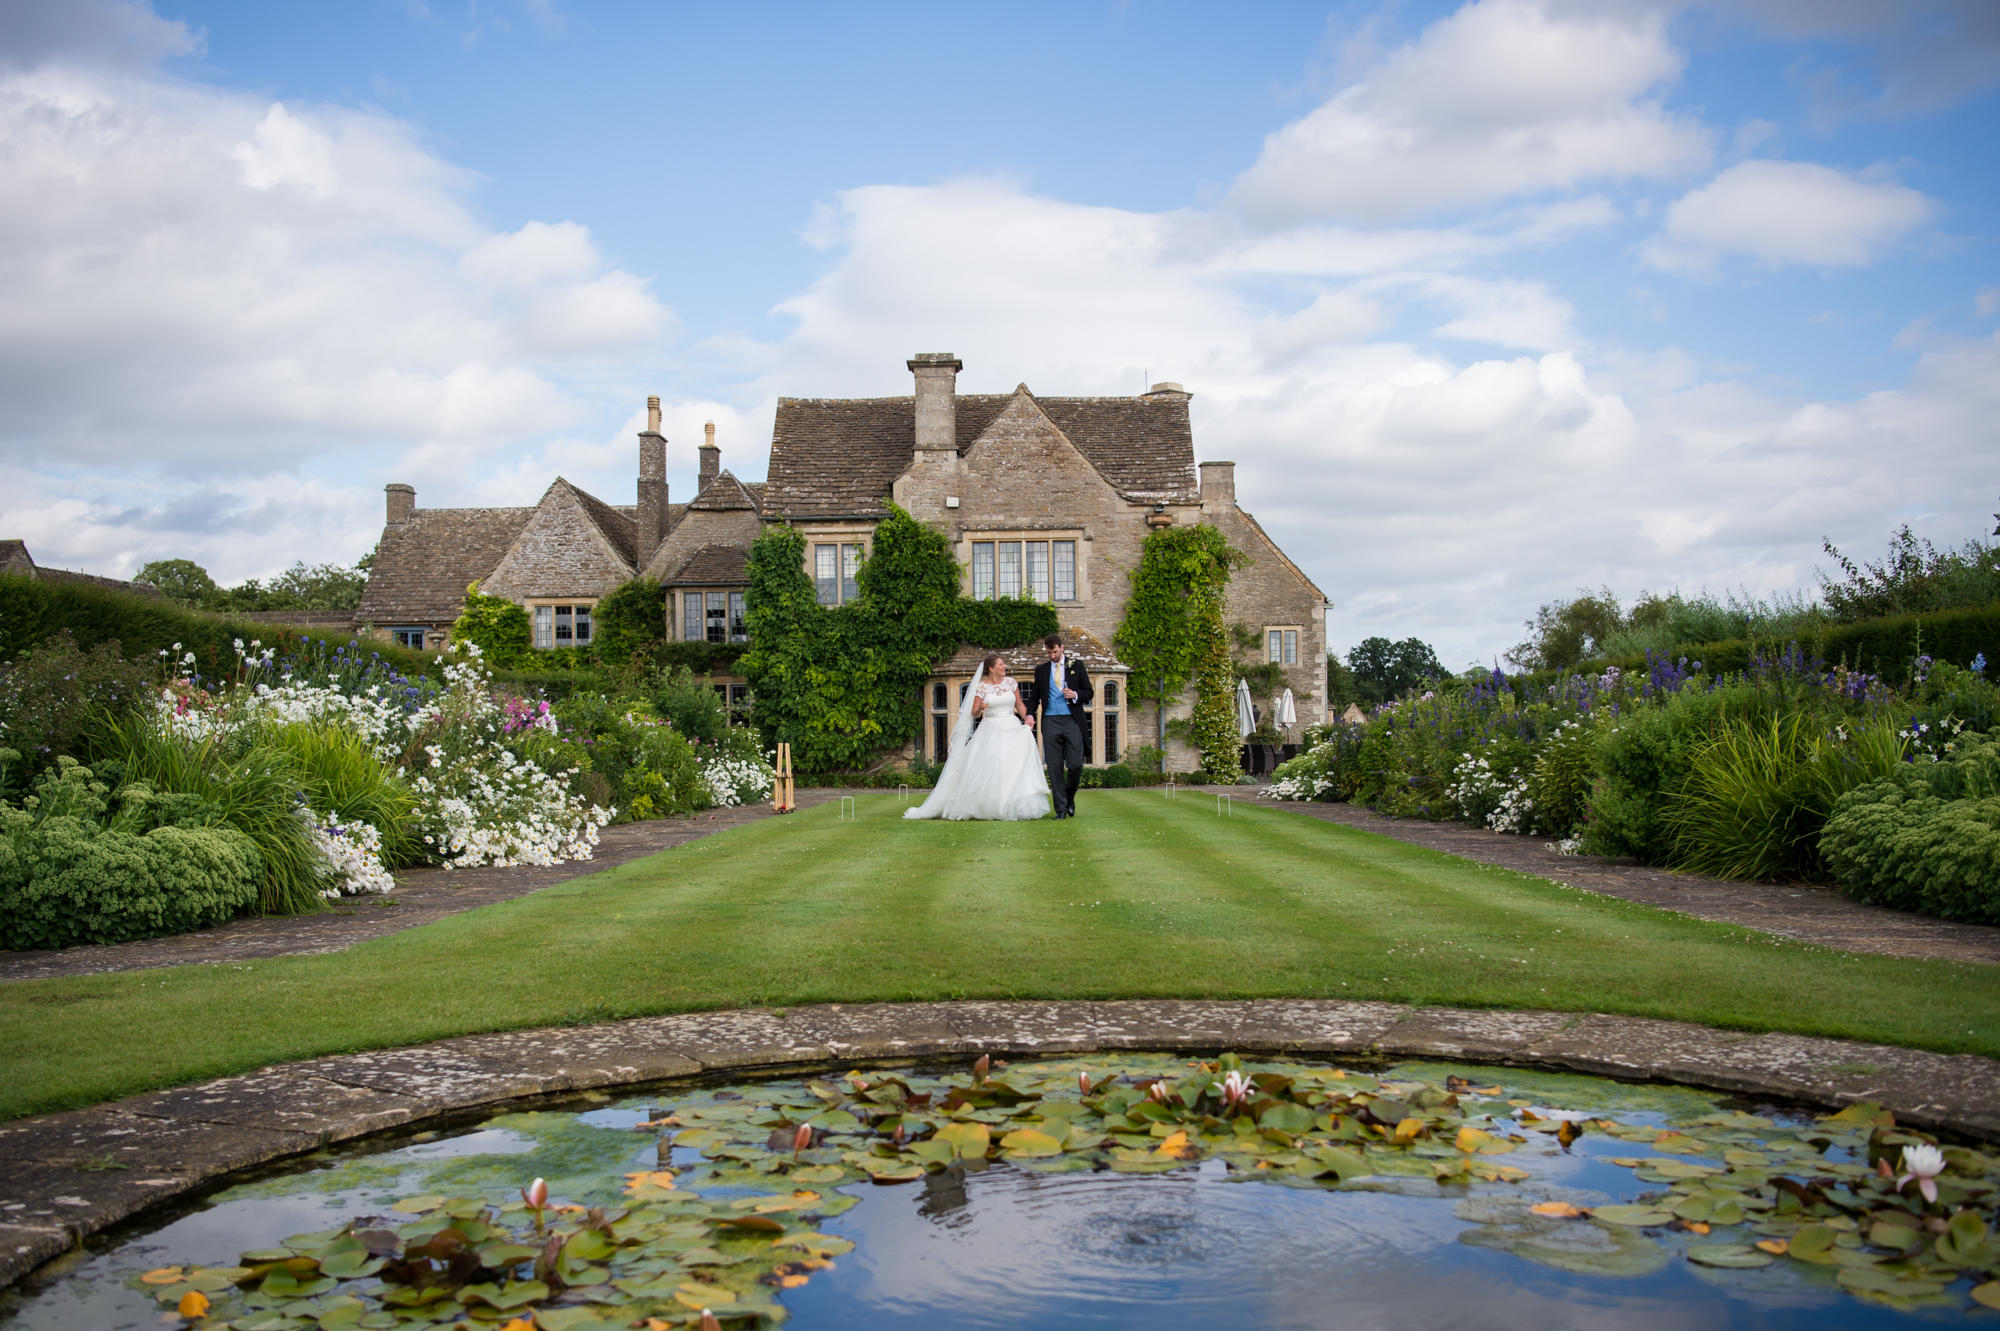 Bride and groom walking in the gardens of Whatley Manor with the wedding venue in the background